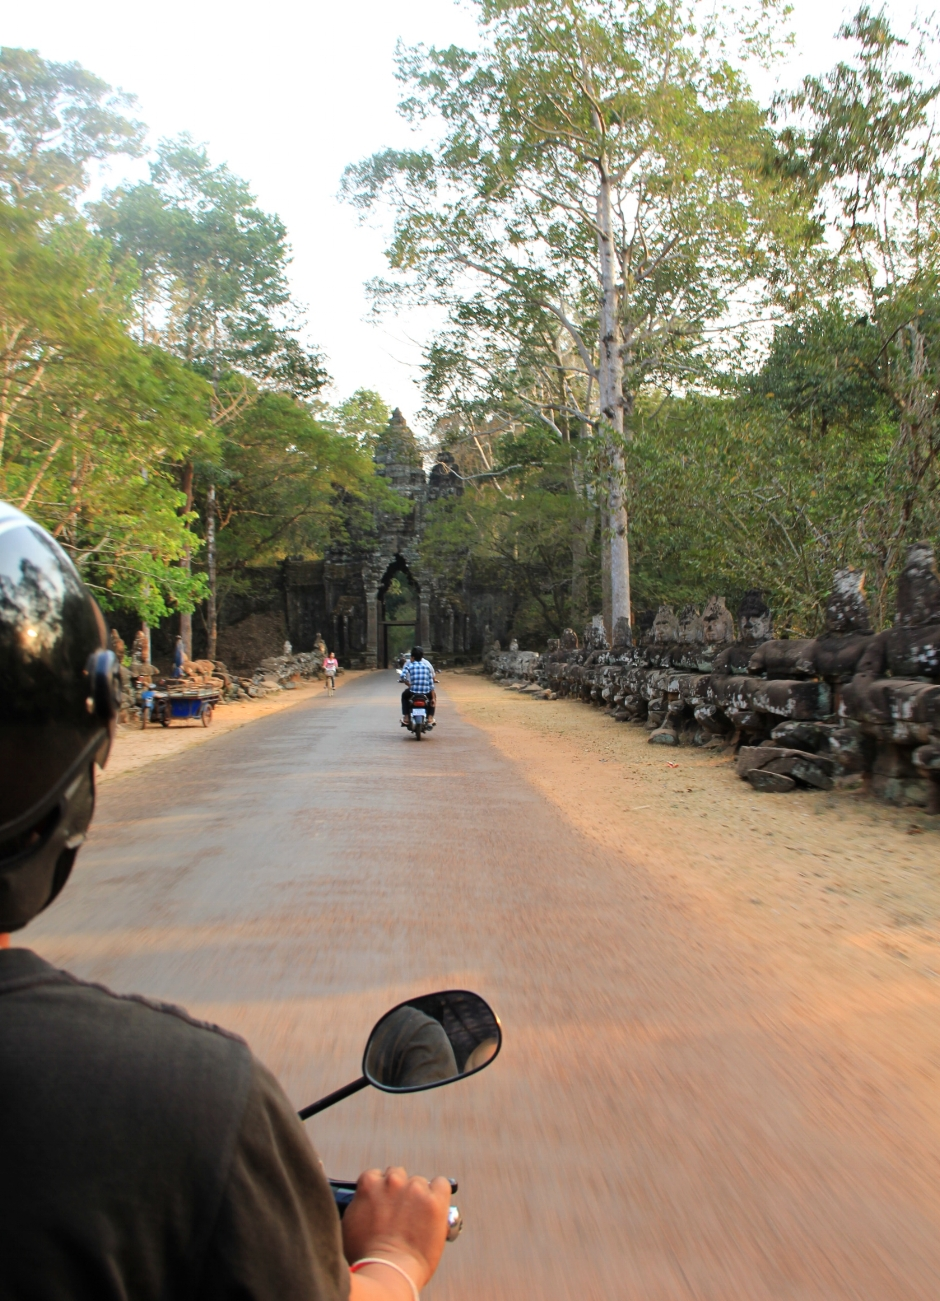 Back to explorer mode. Tuk tuk around and stop whenever you find an interesting temple, animal or tree.